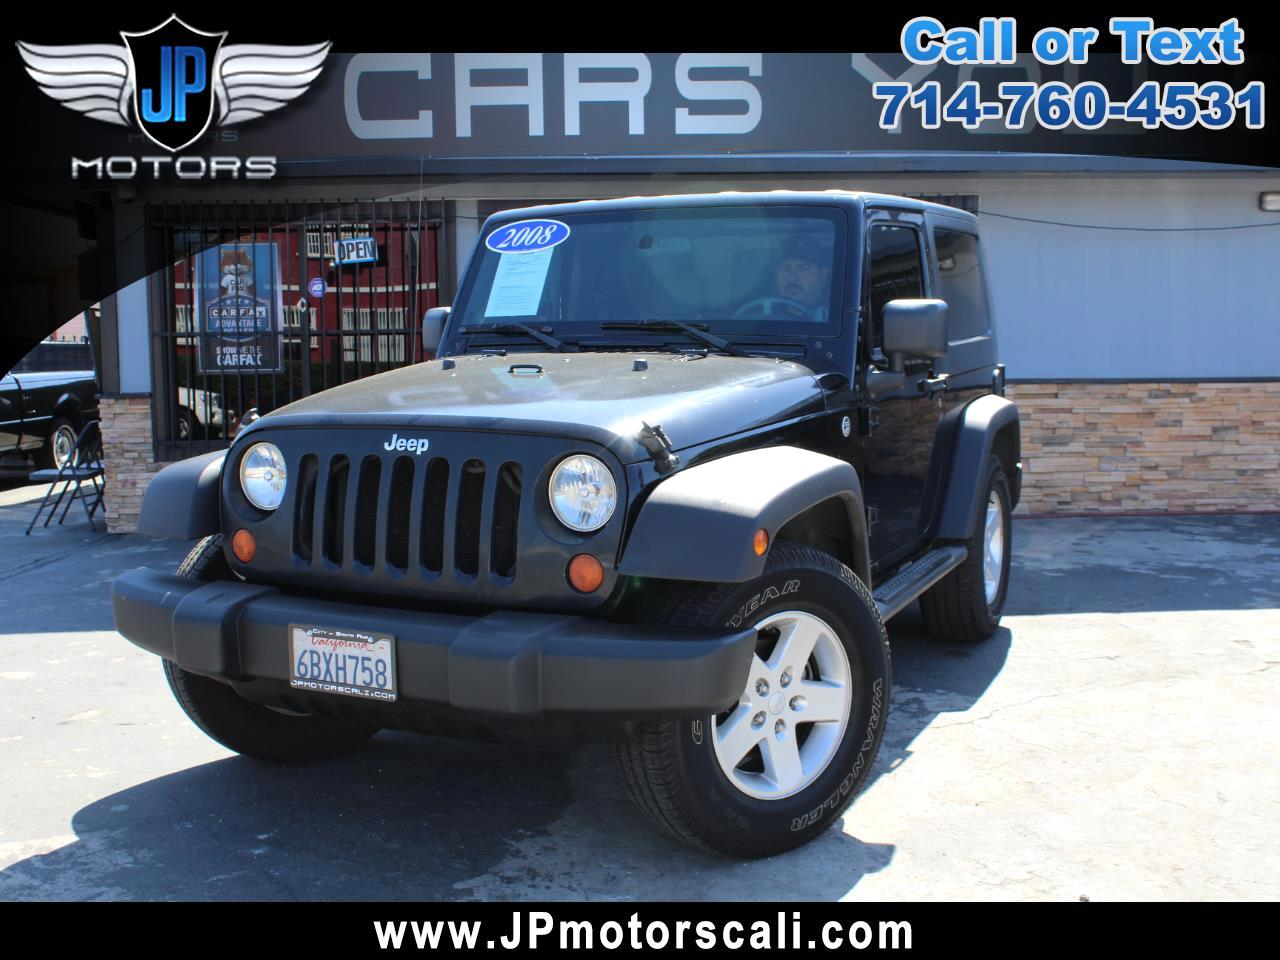 Jeep Wrangler 4WD 2dr X 2008